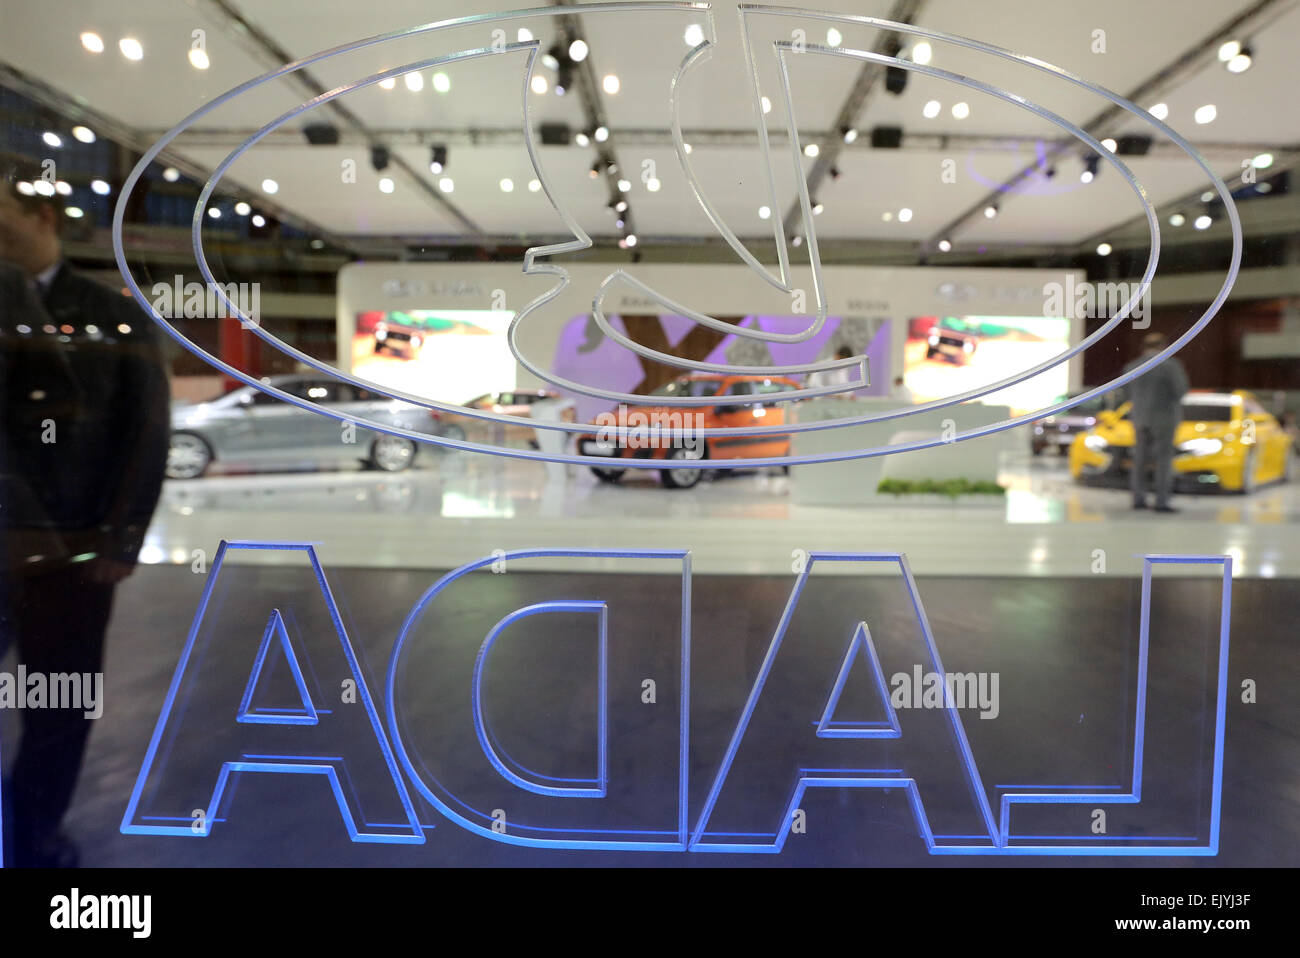 St. Petersburg, Russia. 2nd Apr, 2015. AvtoVaz's concept cars unveiled at the Auto World 2015 International - Stock Image